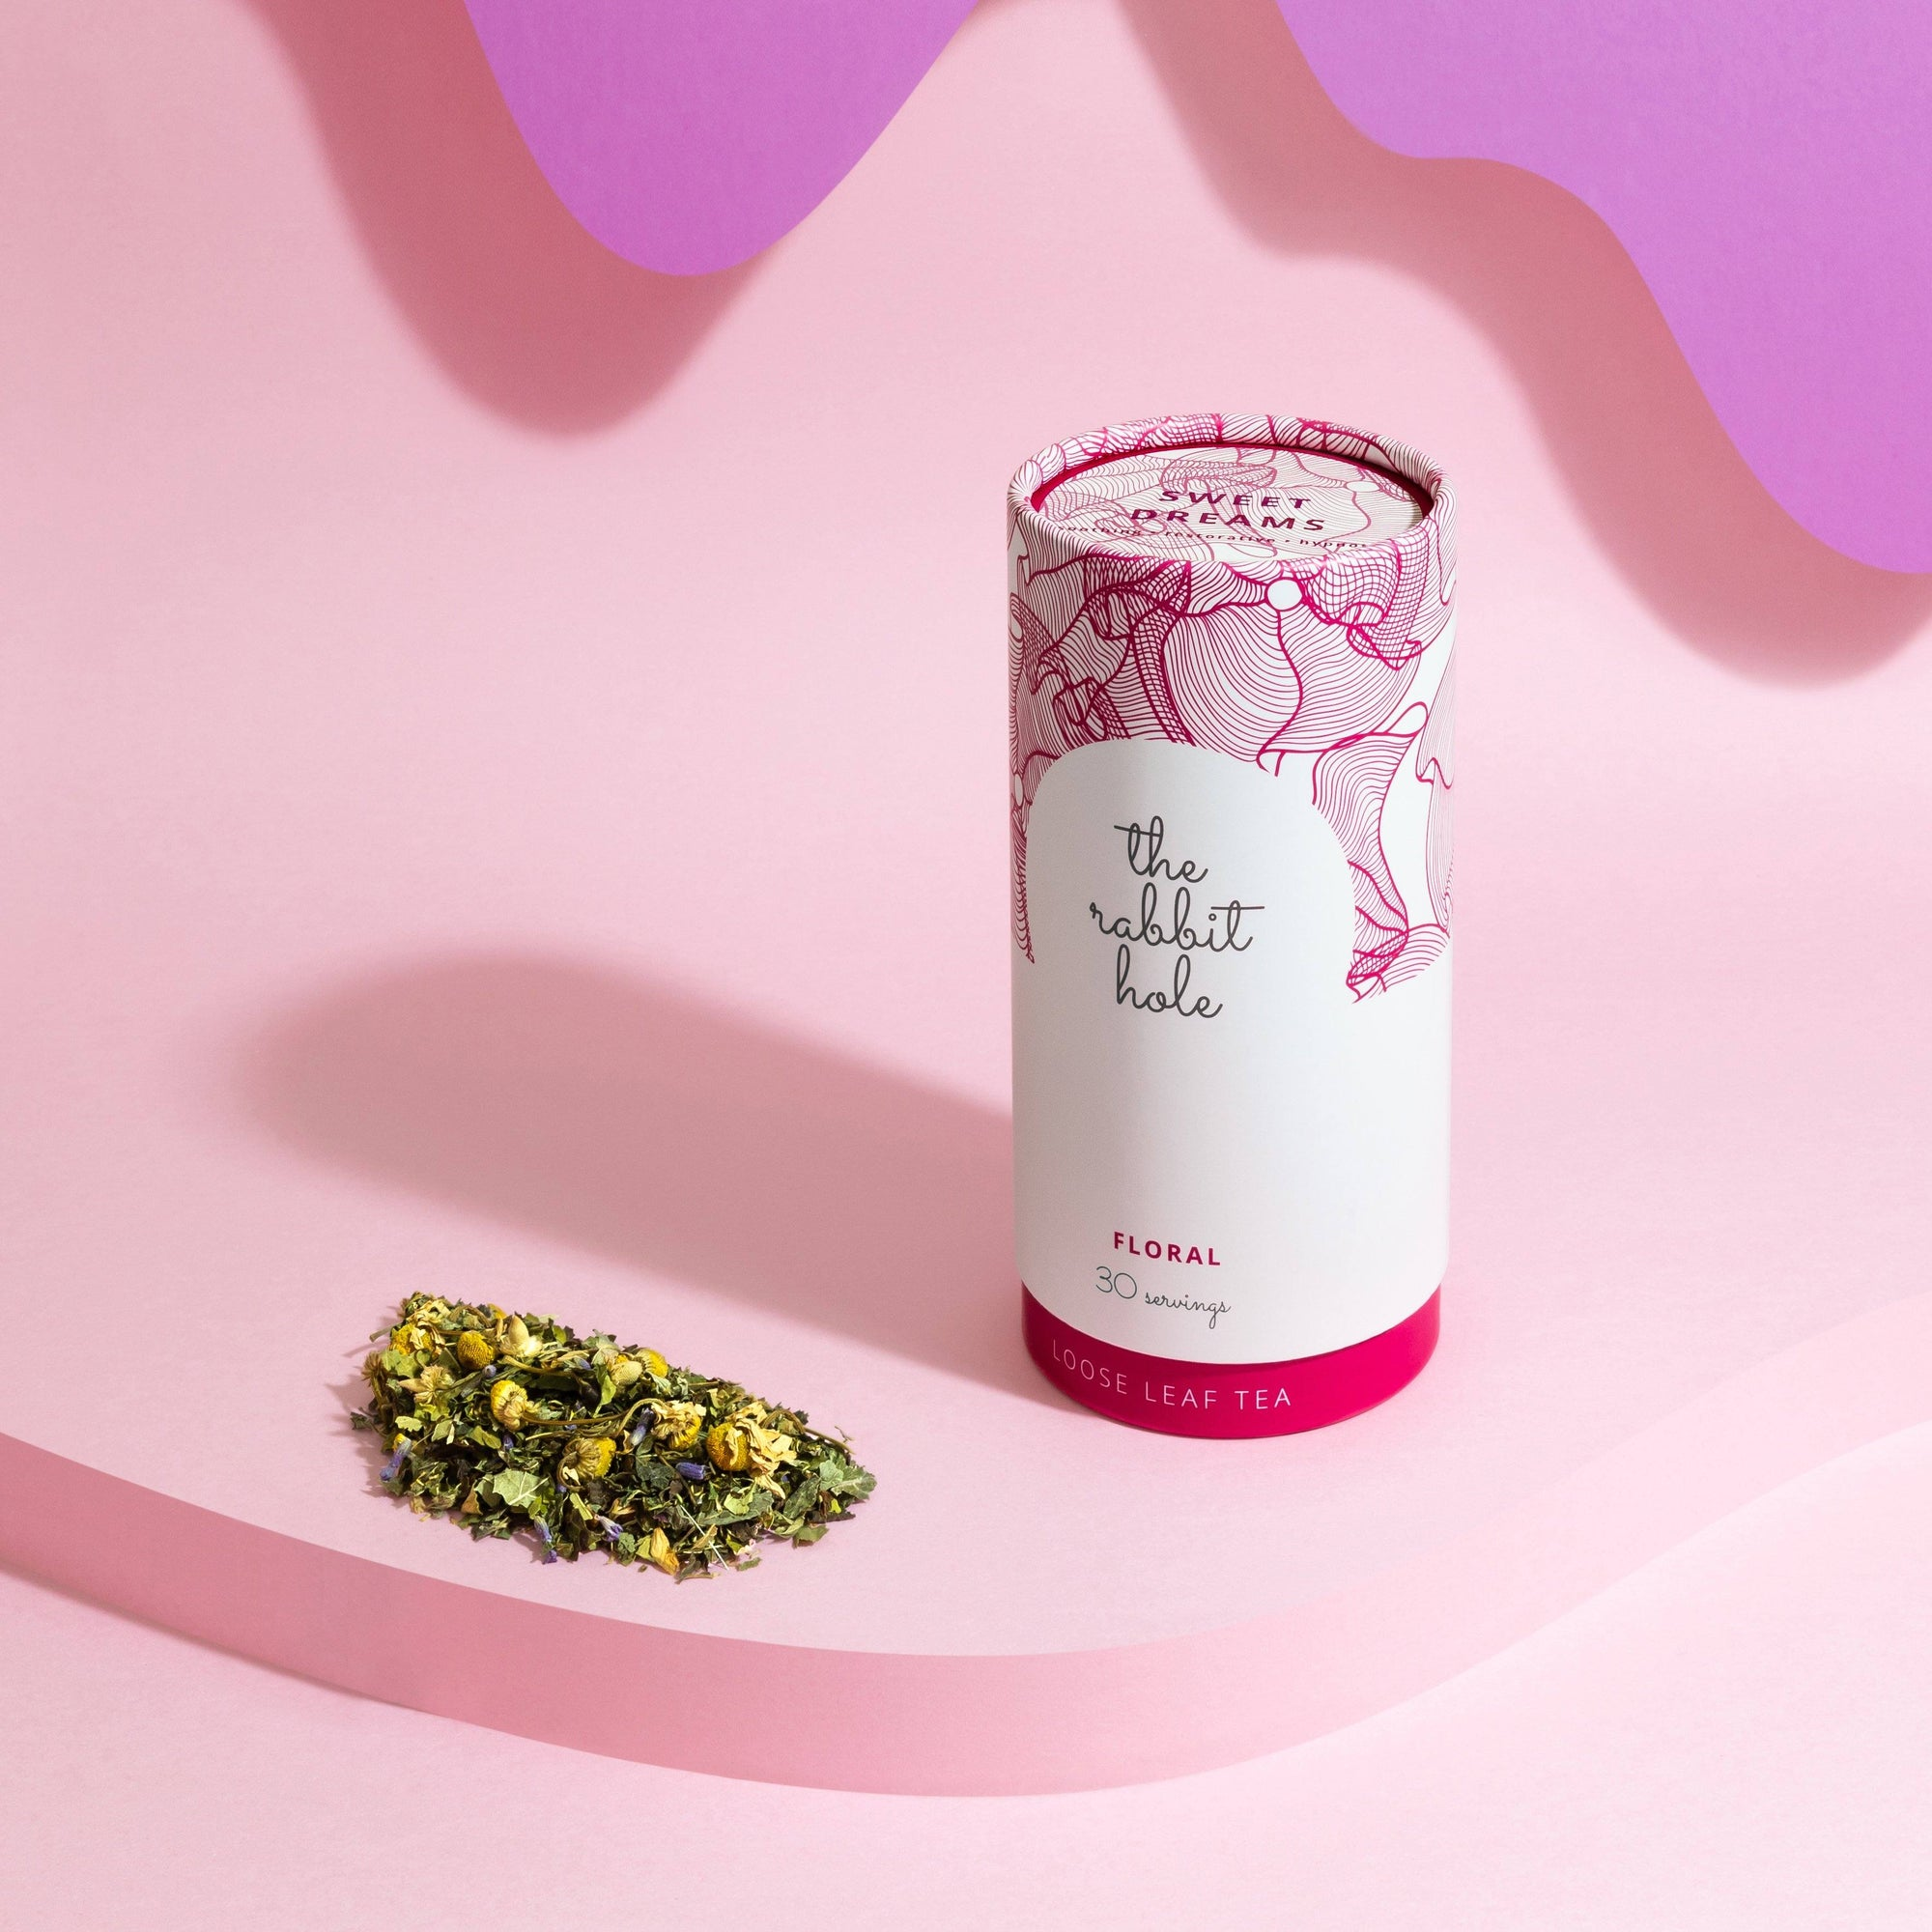 Sweet Dreams Floral The Rabbit Hole - Australian Made Tea